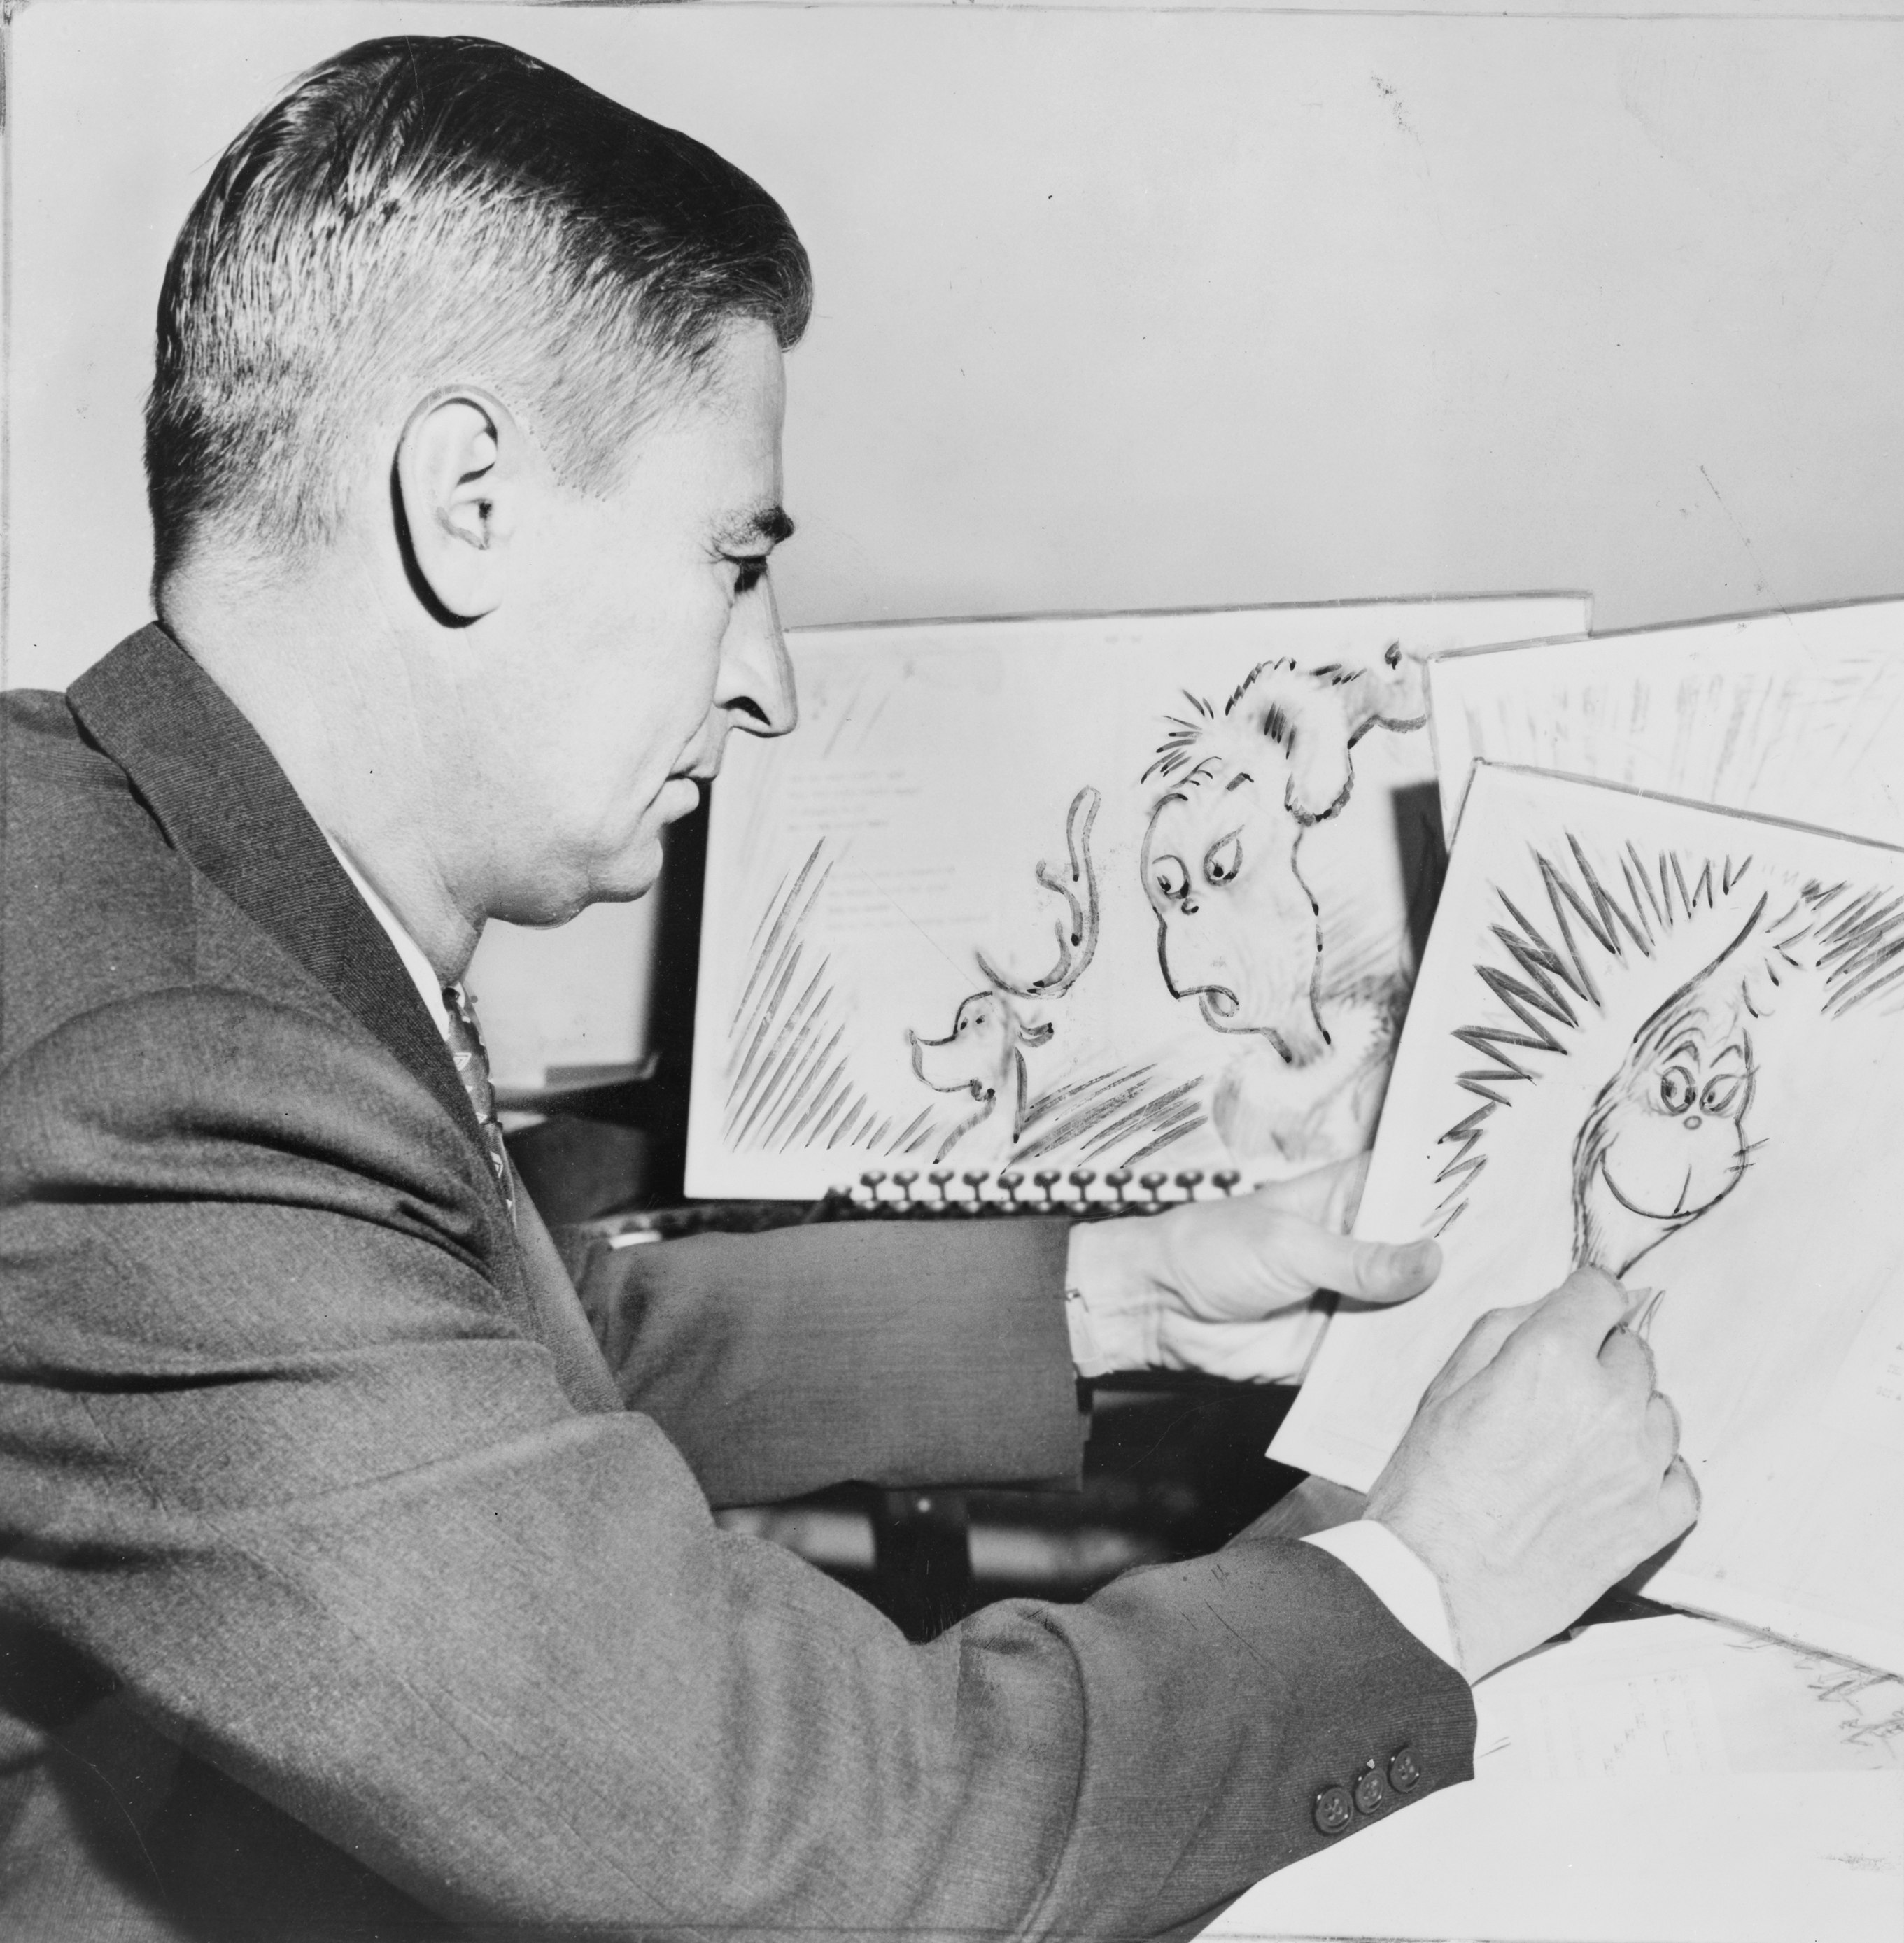 a biography and life work of theodore seuss geisel an american author Born theodor seuss geisel in 1904, the writer produced more than 60  and  one in four american children receives a seuss work as his or her first book   two documentary films based on works he created (hitler lives.